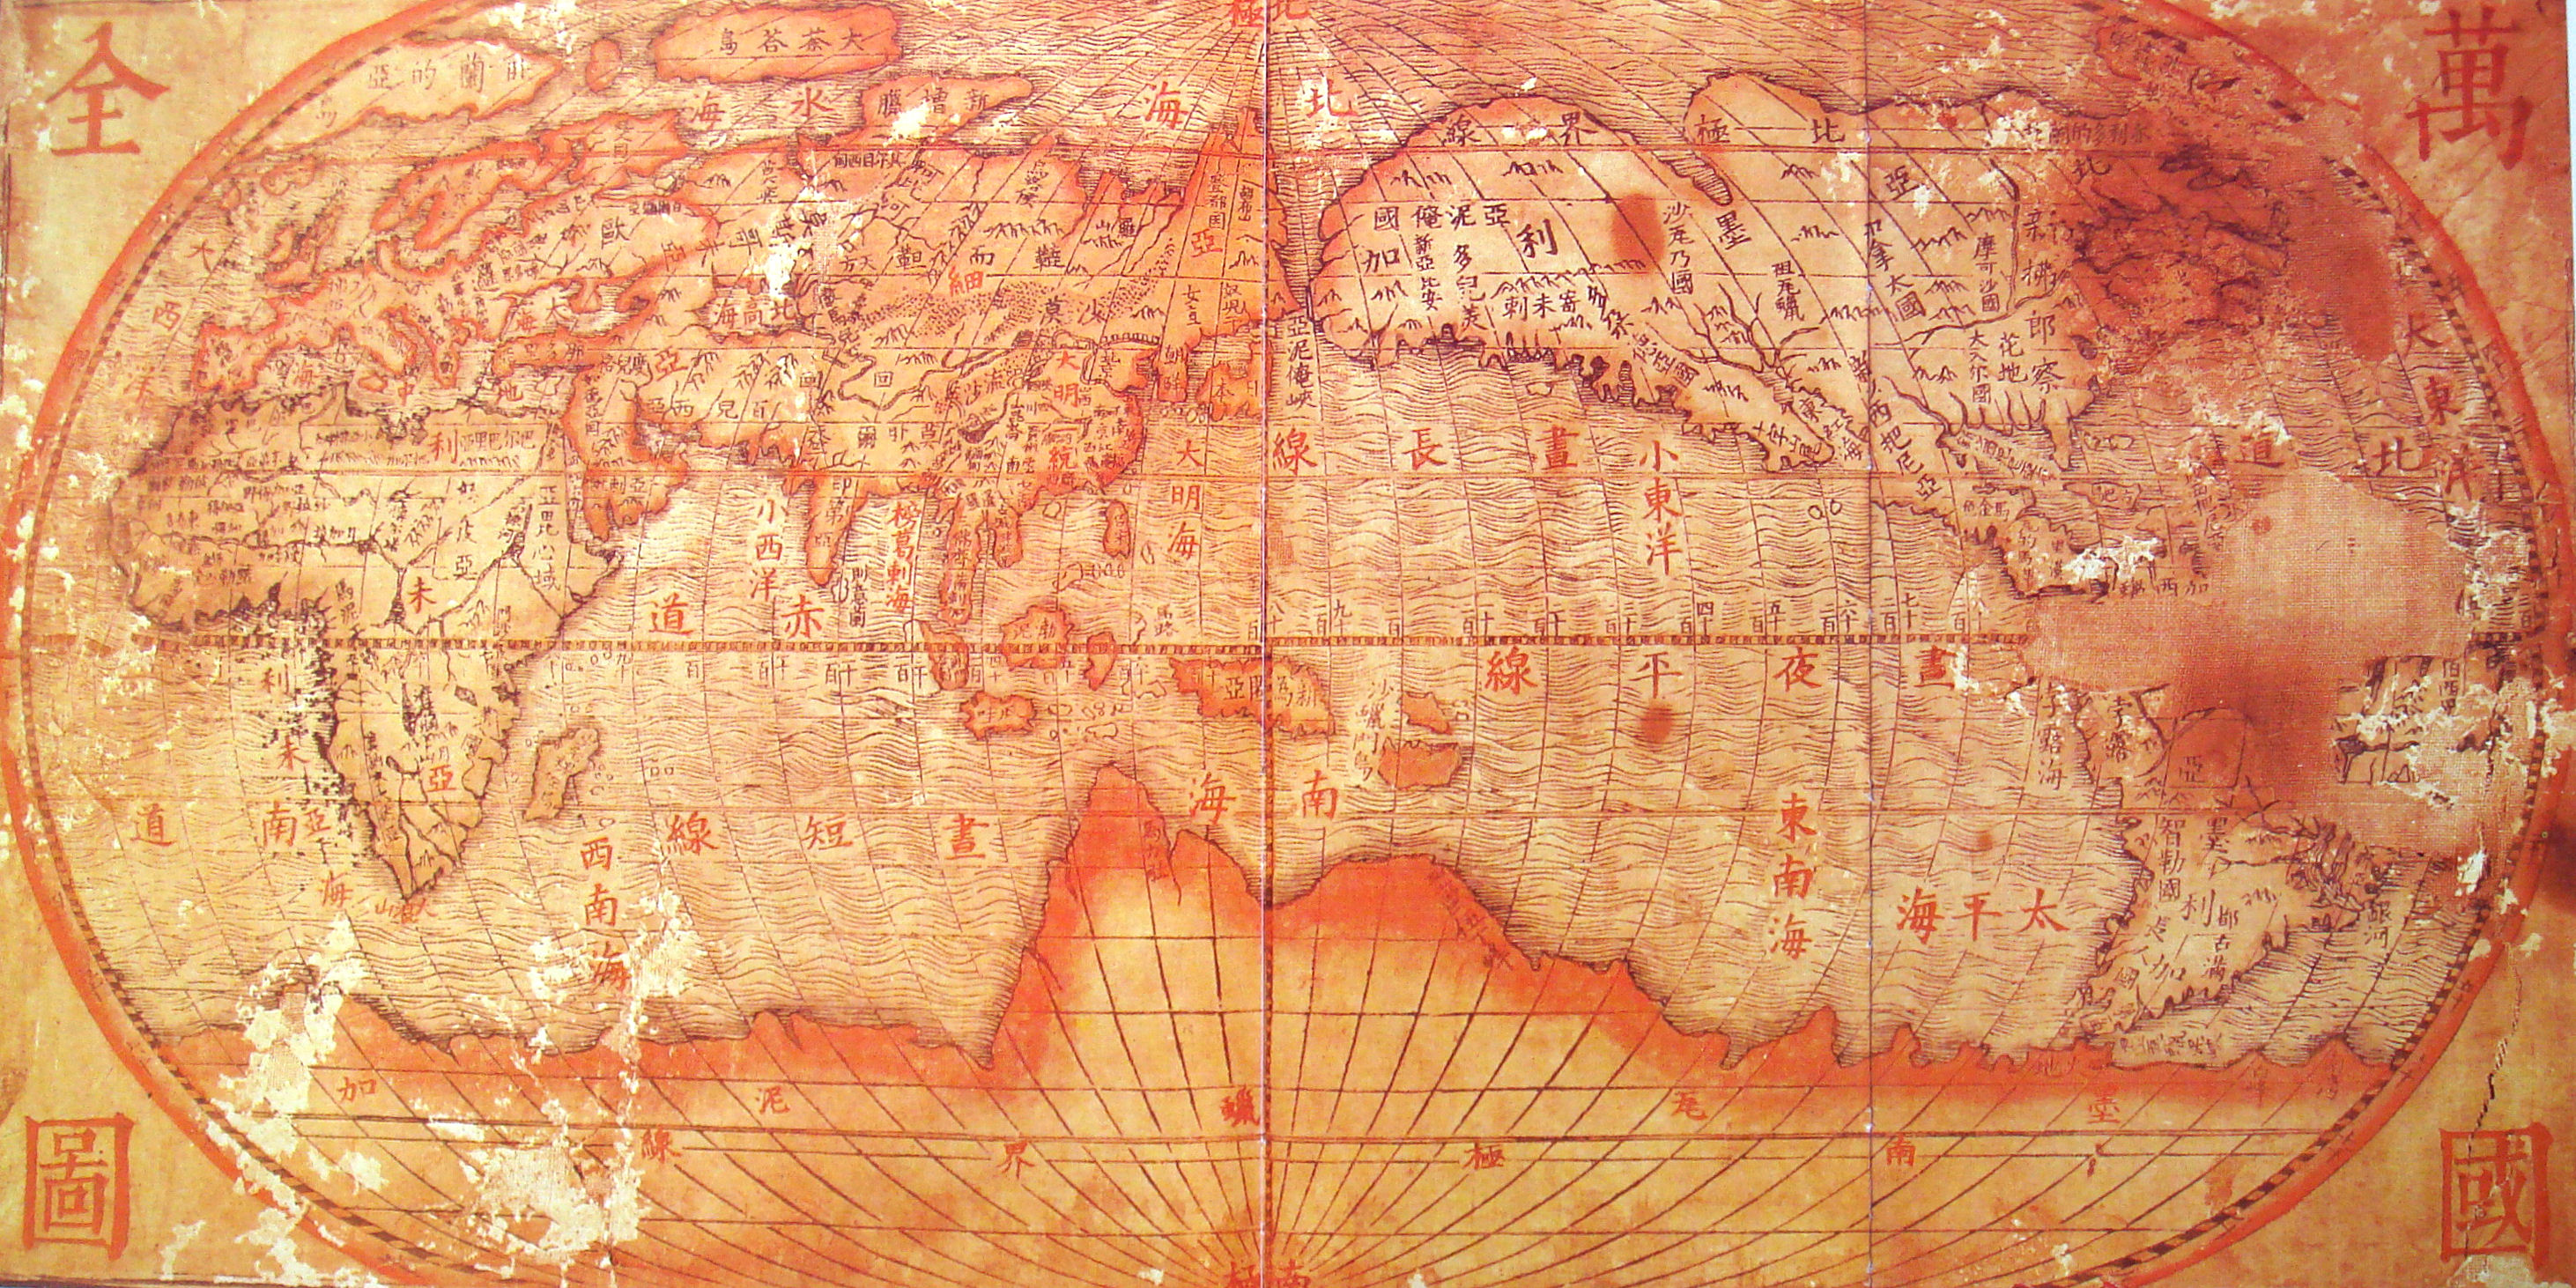 Res obscura early chinese world maps early chinese world maps gumiabroncs Image collections